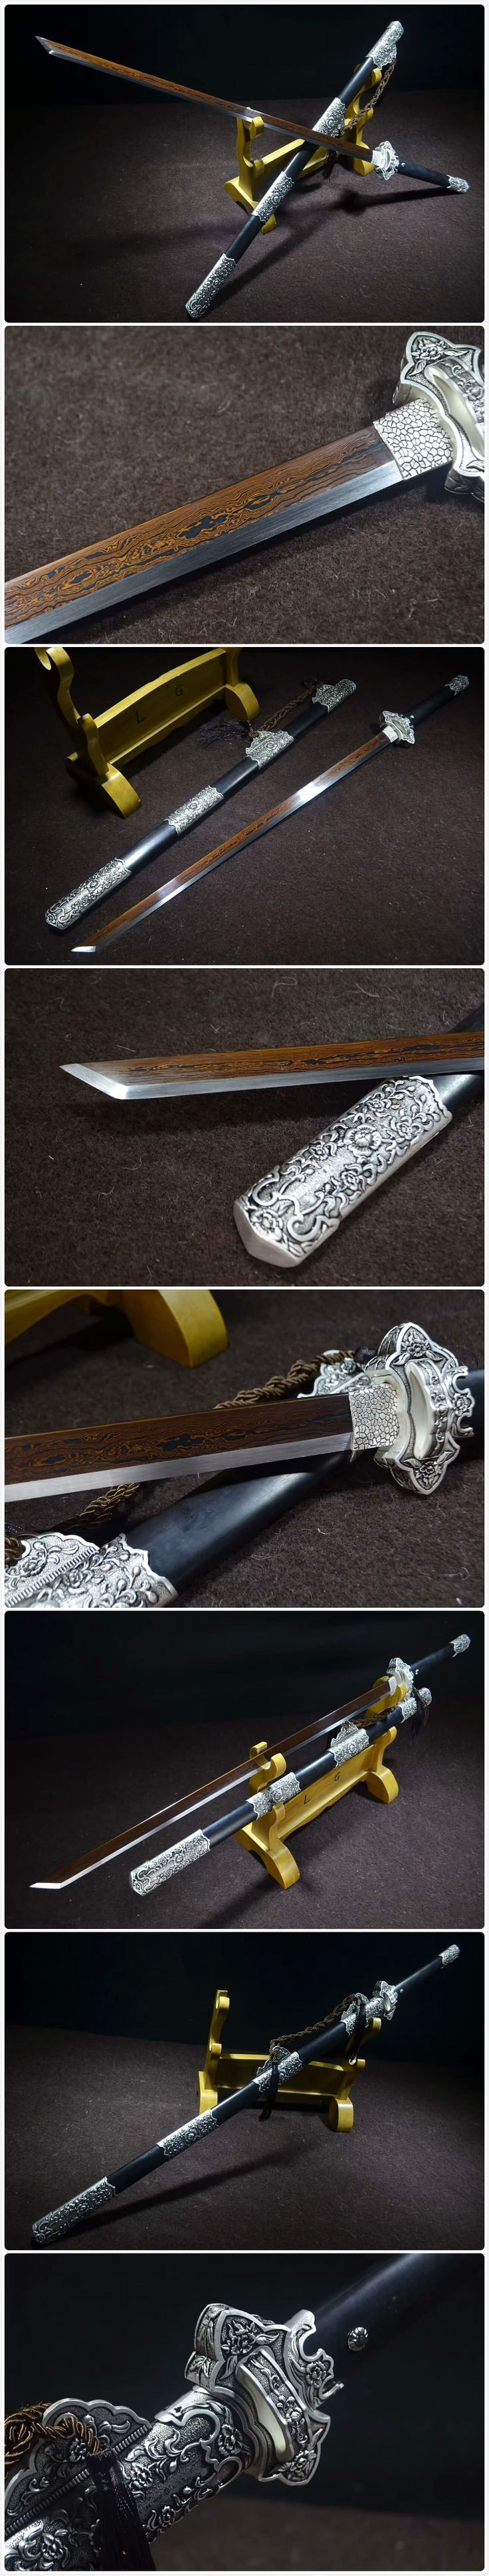 https://www.chinese-sword.com/